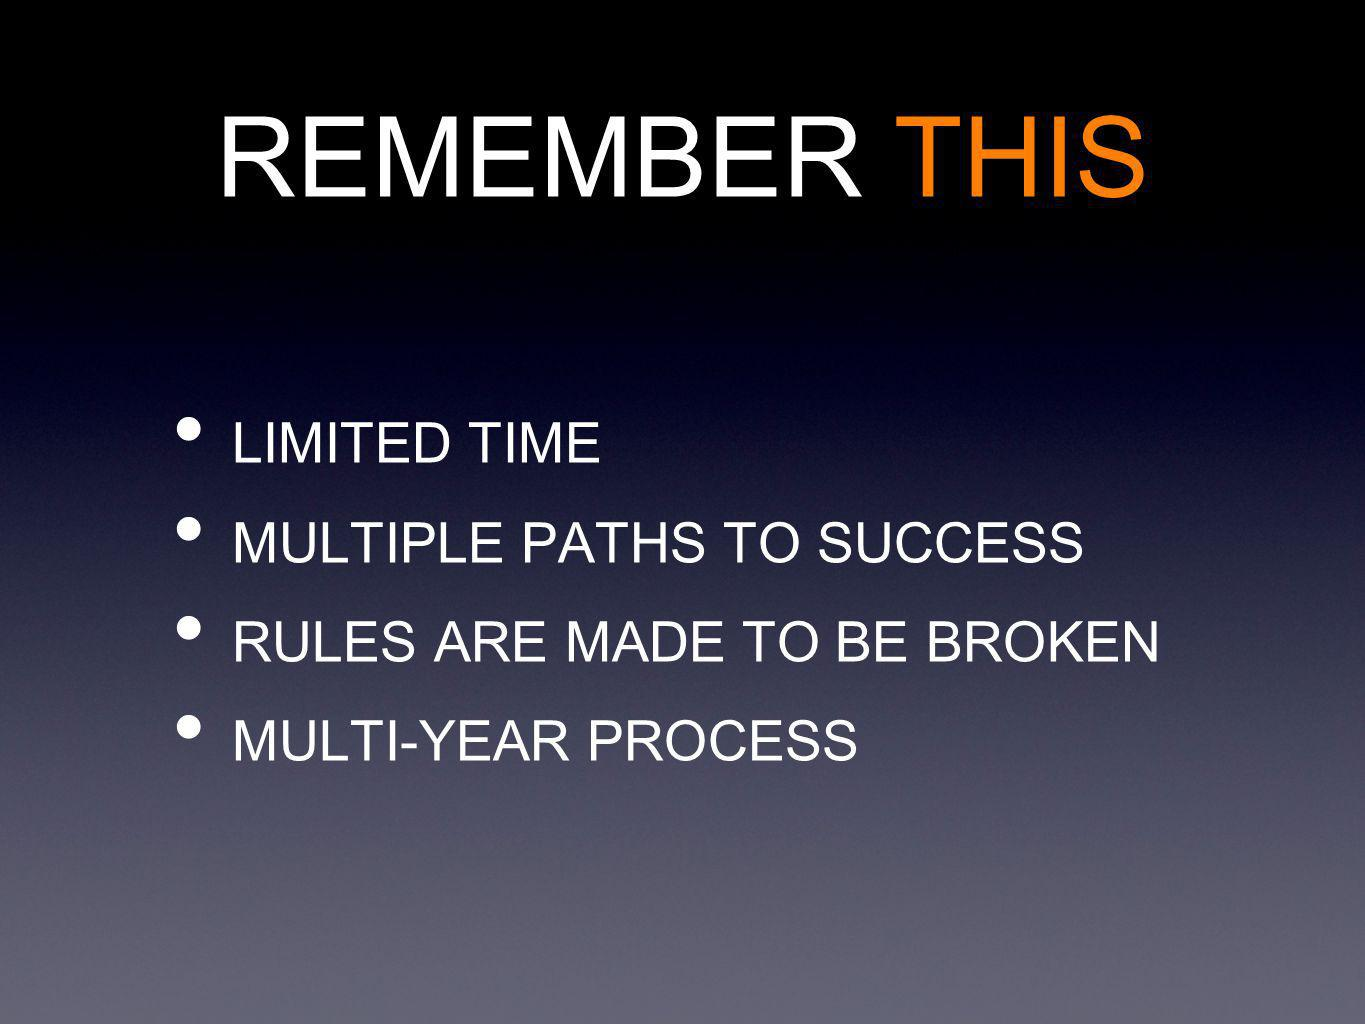 REMEMBER THIS LIMITED TIME MULTIPLE PATHS TO SUCCESS RULES ARE MADE TO BE BROKEN MULTI-YEAR PROCESS